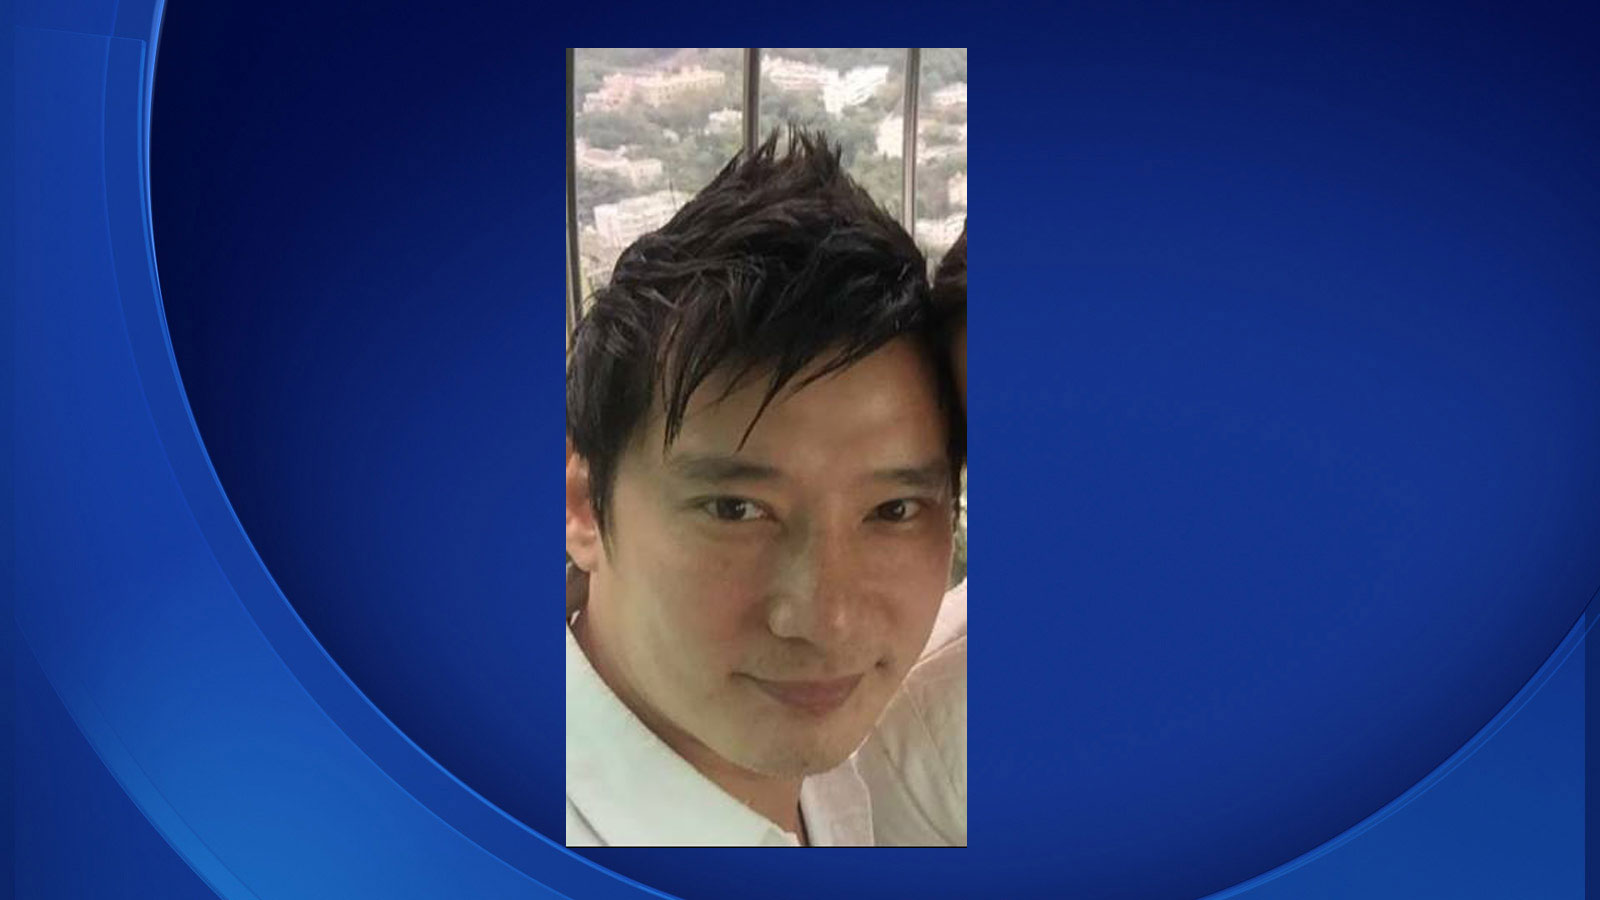 James Woo (credit: El Paso County Sheriff's Office)